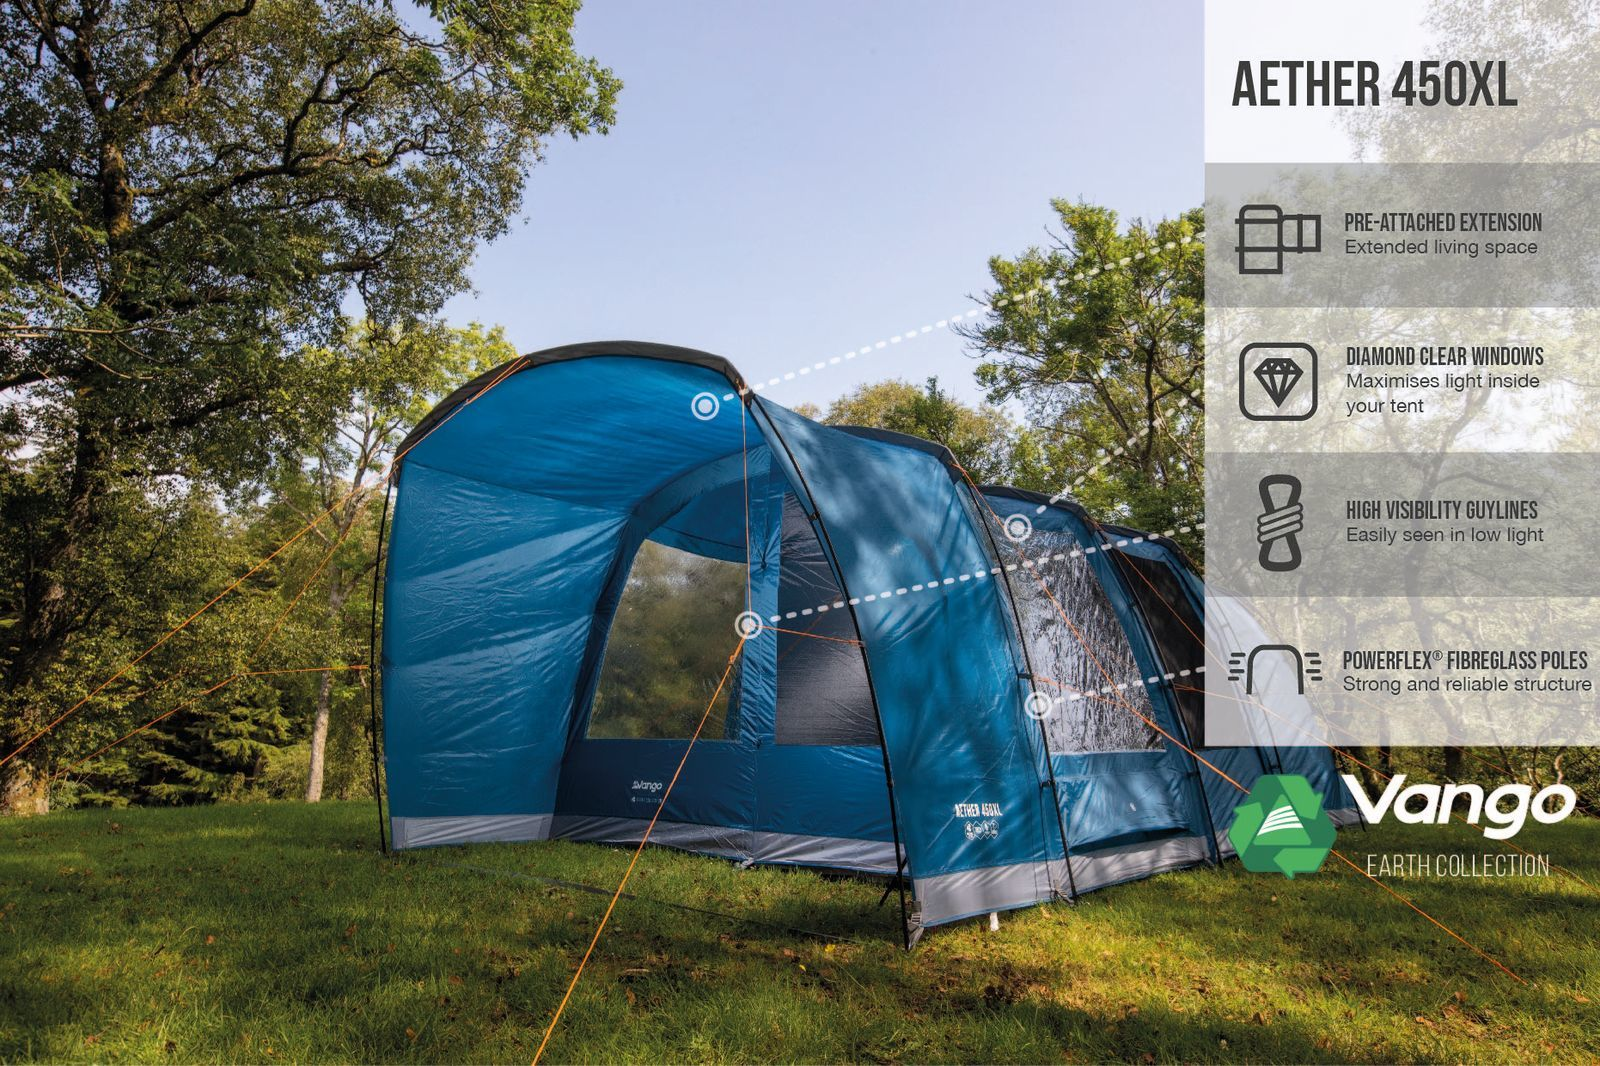 Vango Aether 450Xl Poled 20221 Norwich Camping 2